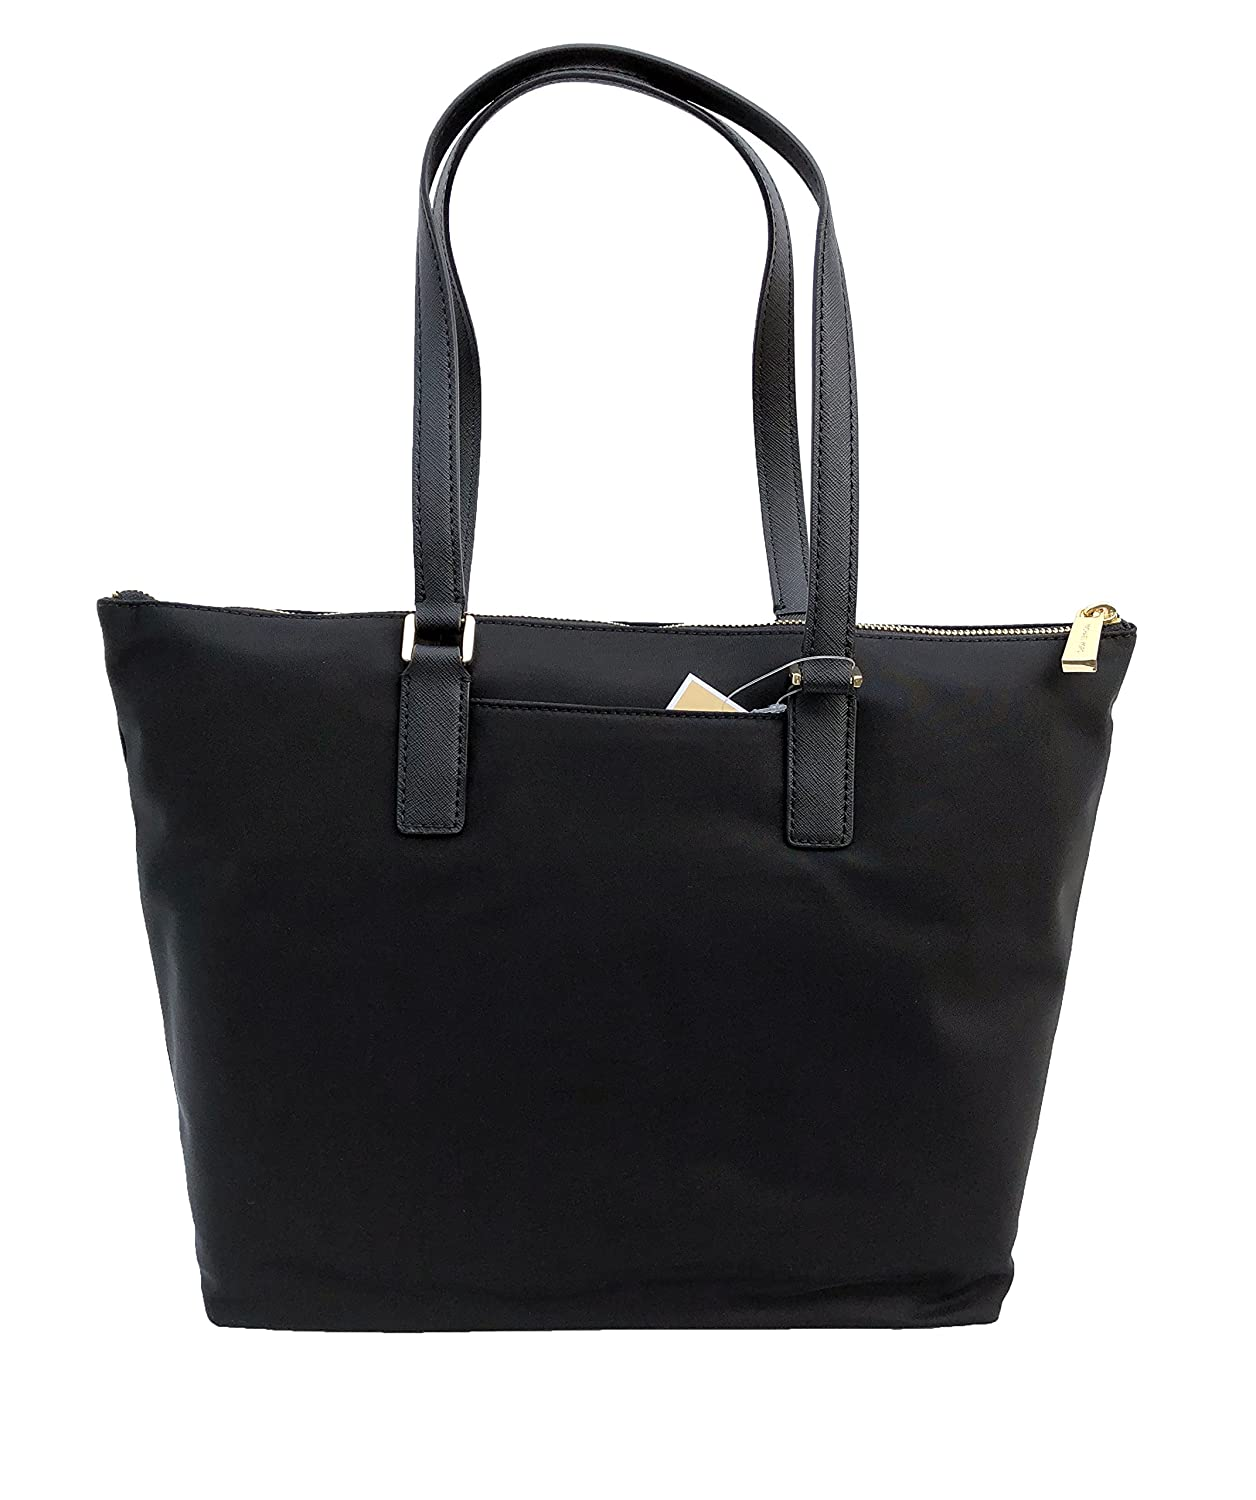 23bb97d02184 Amazon.com: MICHAEL Michael Kors Ariana North/South Large Nylon with  Leather Trim Tote (Black): Shoes